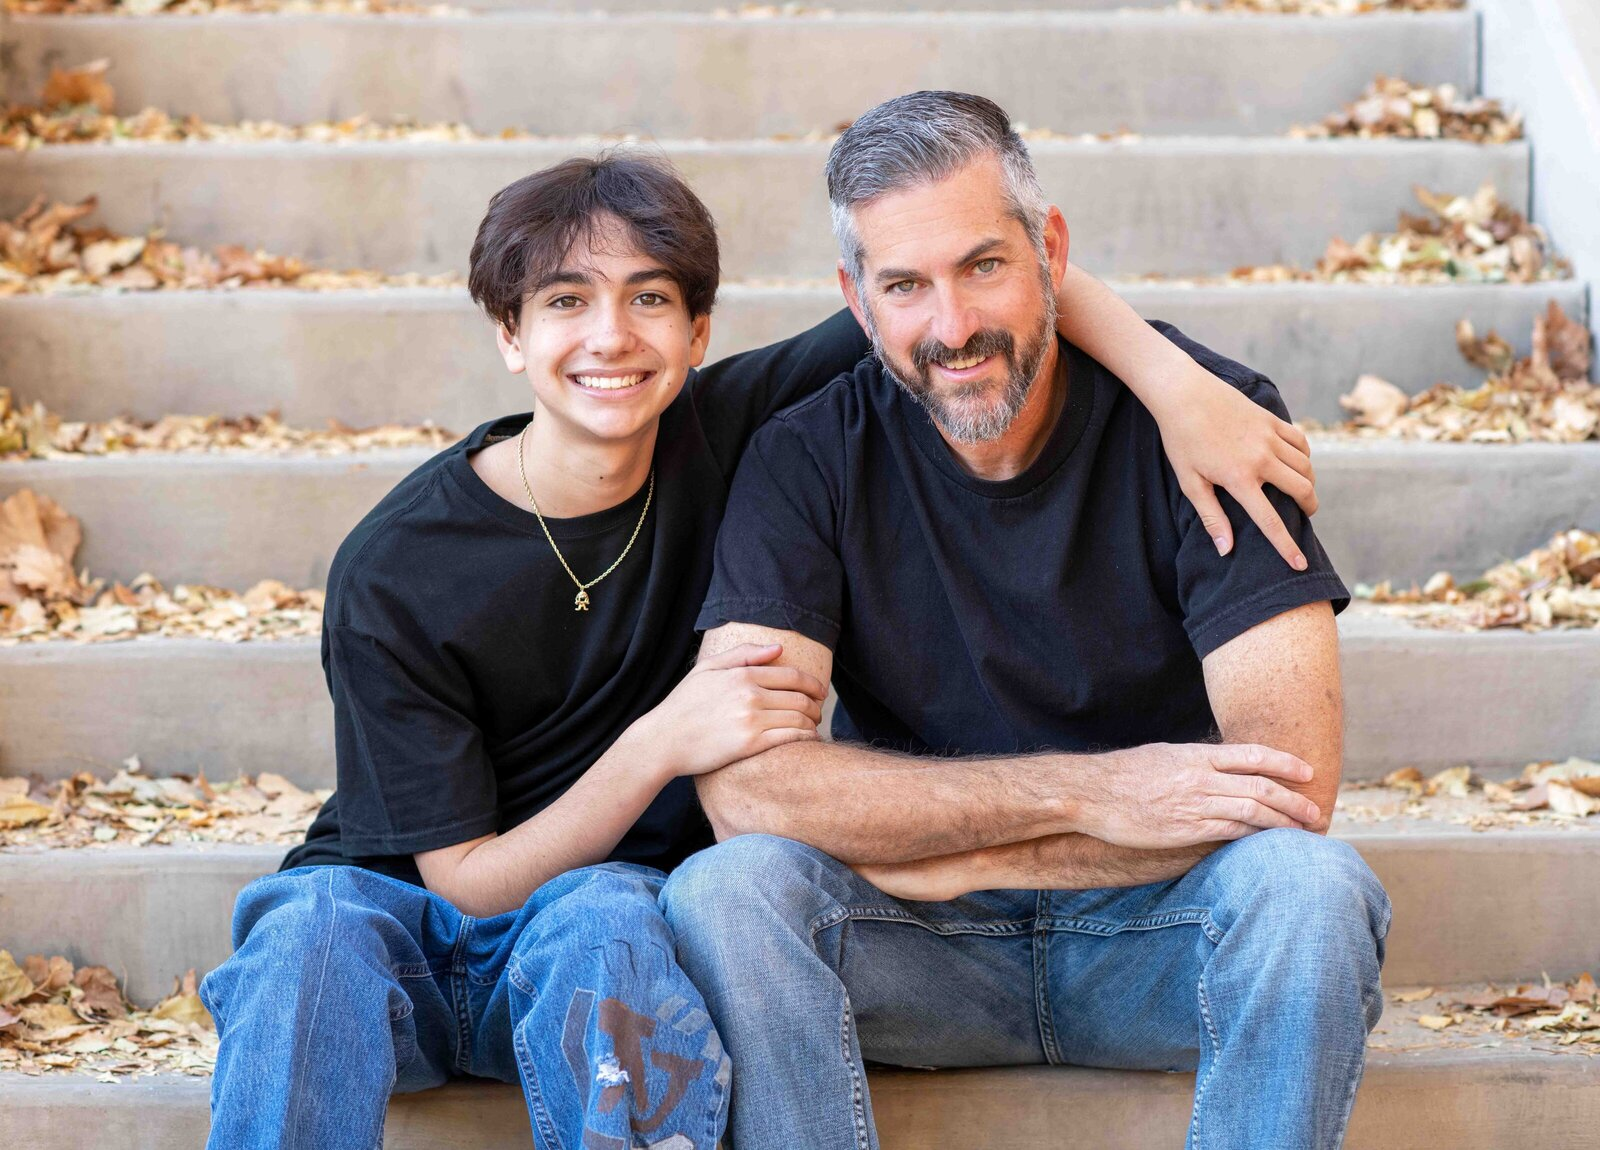 Maria-McCarthy-Photography-father-son